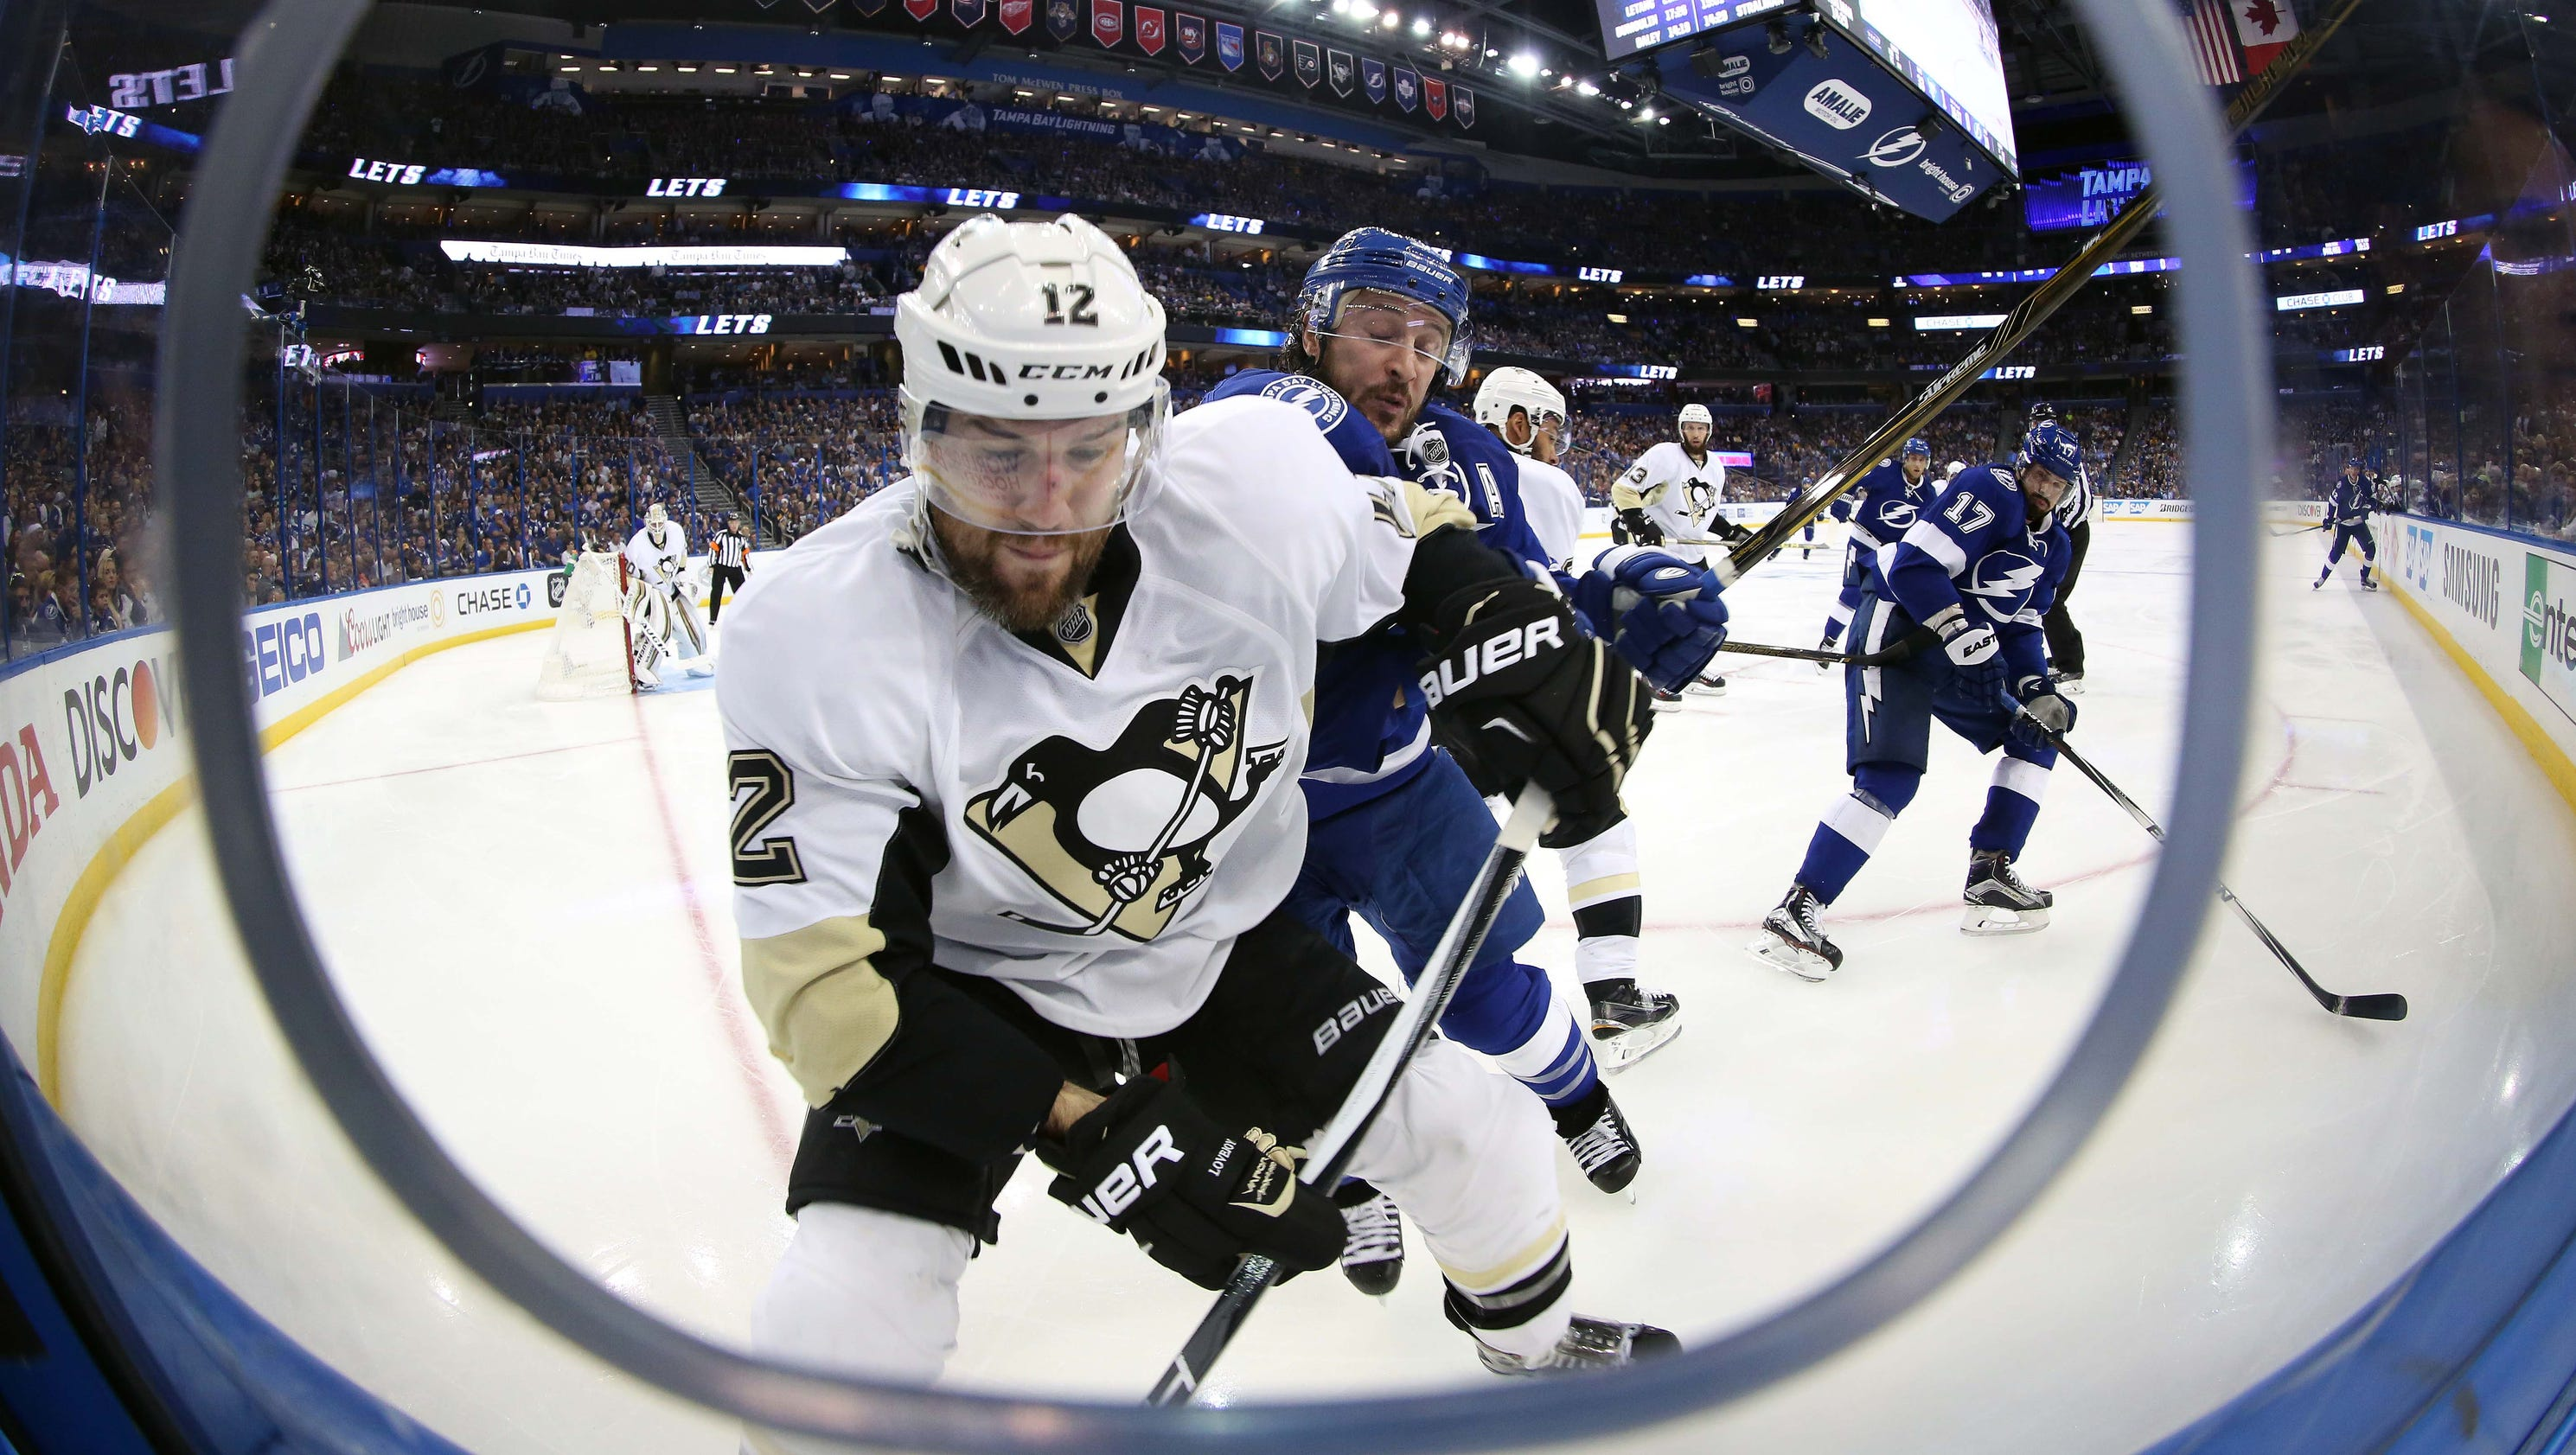 635993703637123971-usp-nhl-stanley-cup-playoffs-pittsburgh-penguins